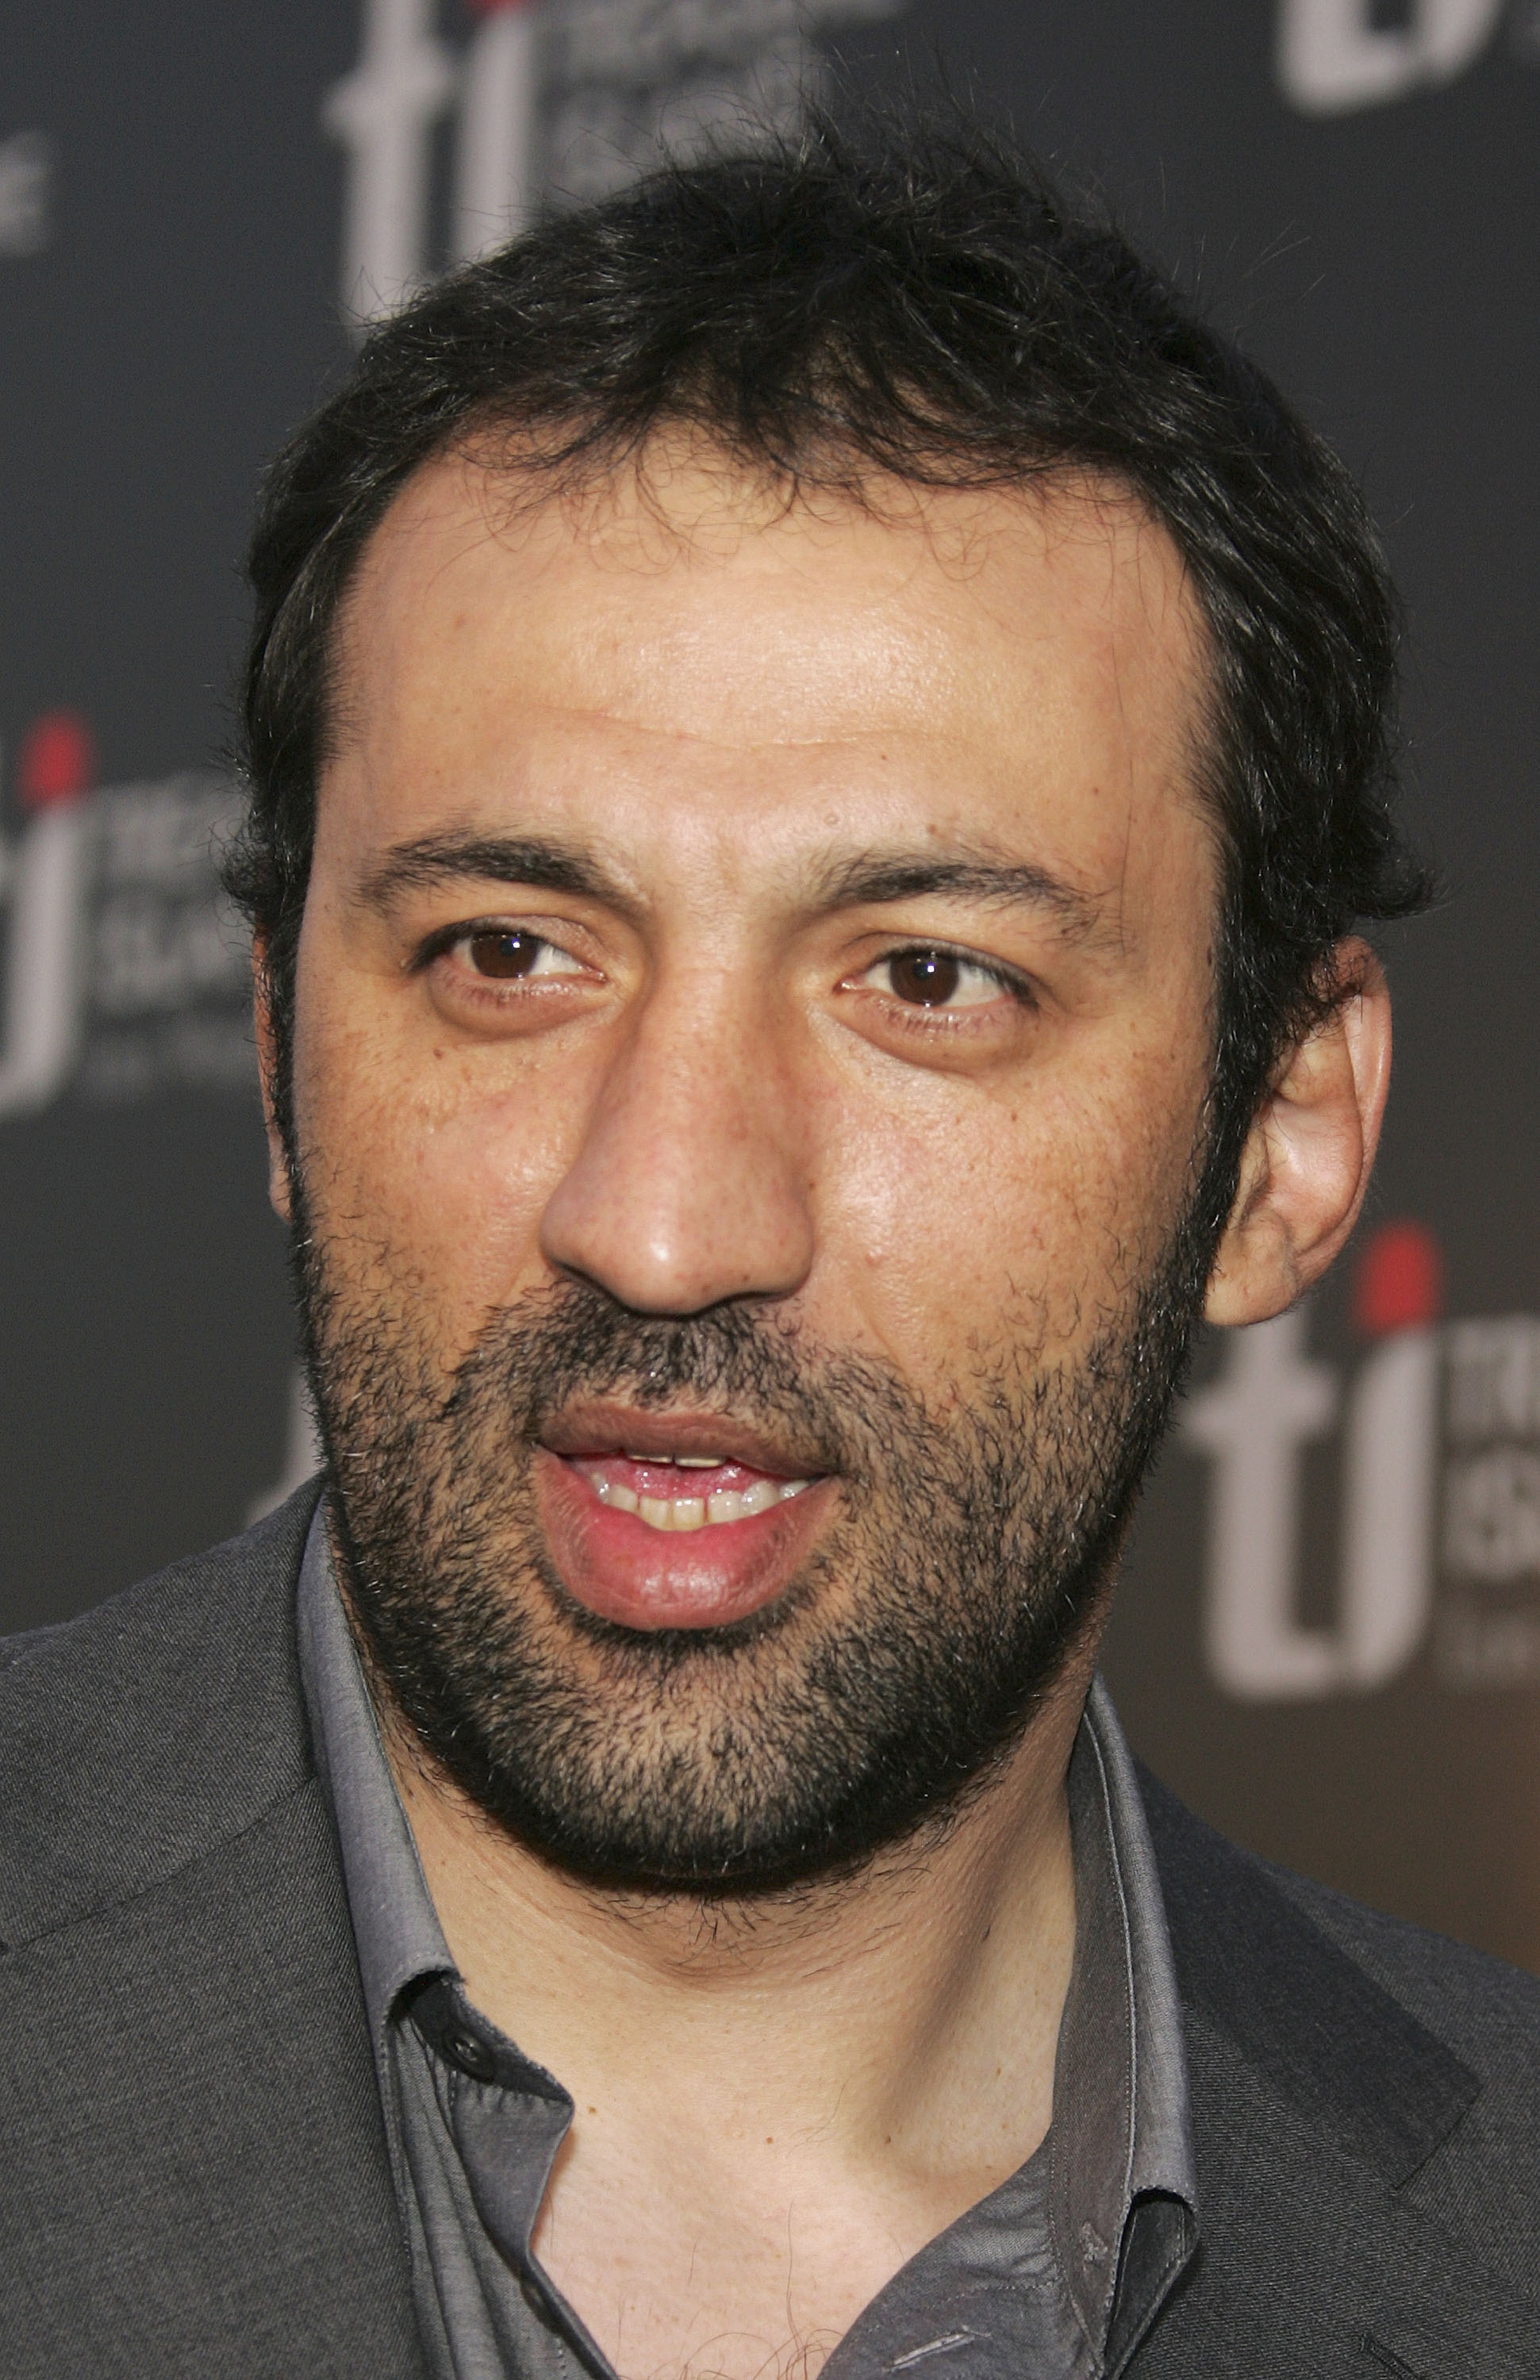 SANTA MONICA, CA - APRIL 14:  Los Angeles Lakers player Vlade Divac attends the 2nd Annual Las Vegas Casino Night Celebrity Poker Challenge on April 14, 2005 in Santa Monica, California. The event Benefits the Los Angeles Lakers Youth Foundation. (Photo b